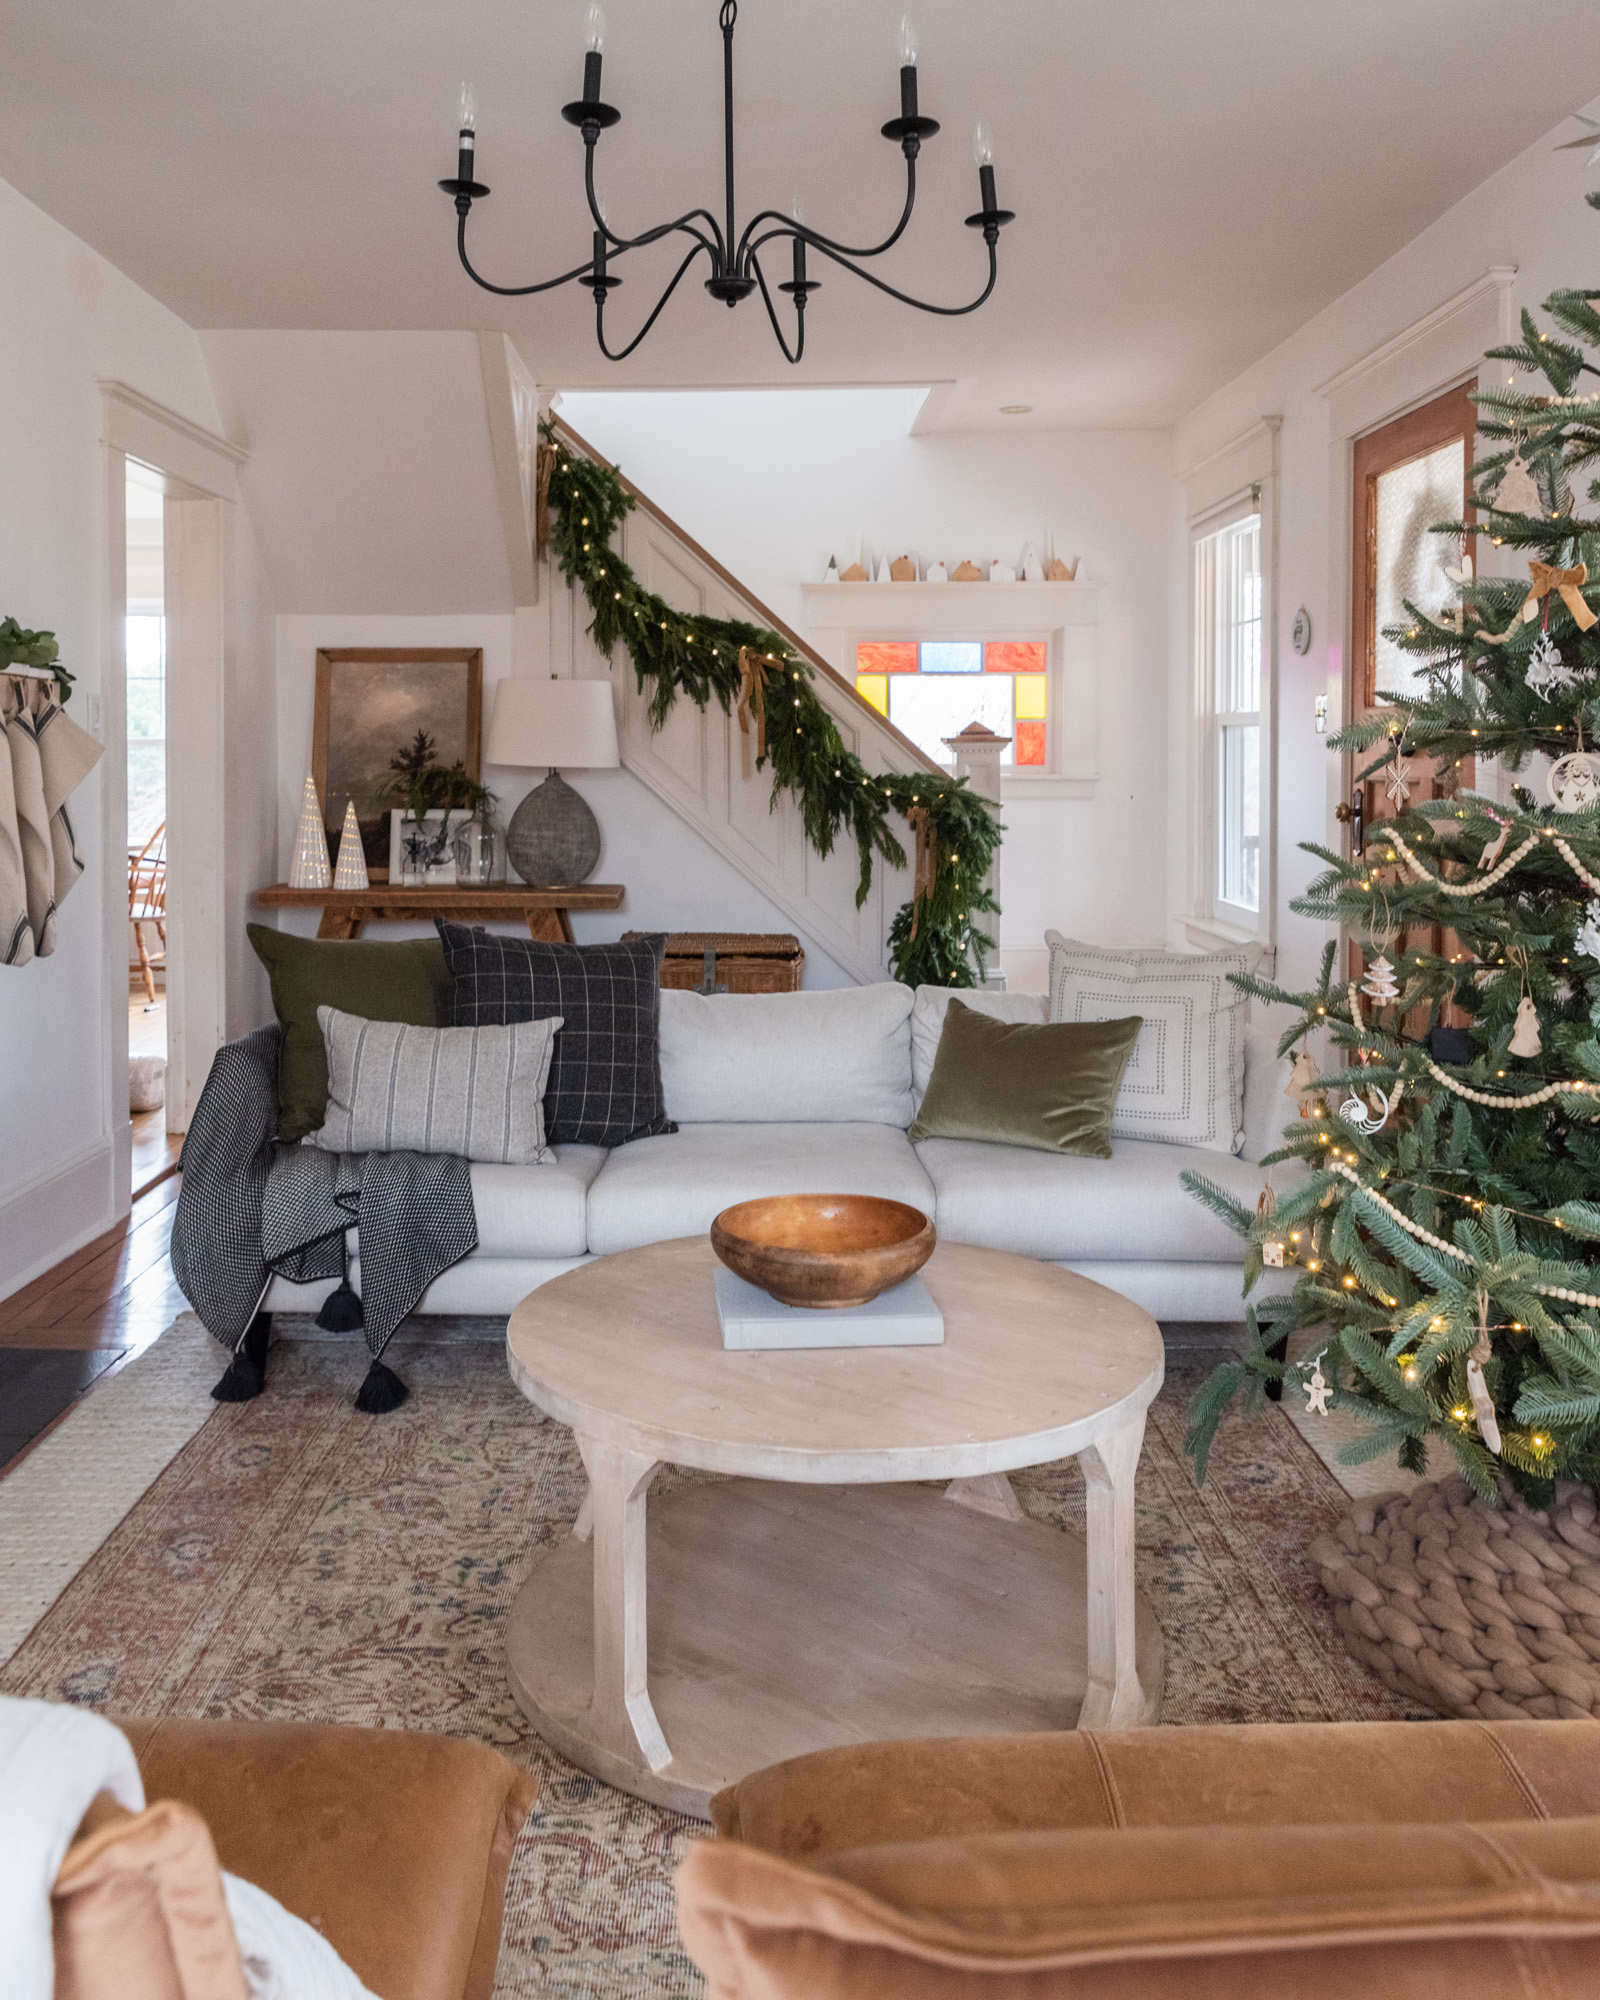 The Wild decoelis | 2020 Holiday Home Tour | Stair garland made out of pine and cedar with gold bows and twinkle lights. White couch with wool throw pillows, vintage wool rug layered over braided wool rug